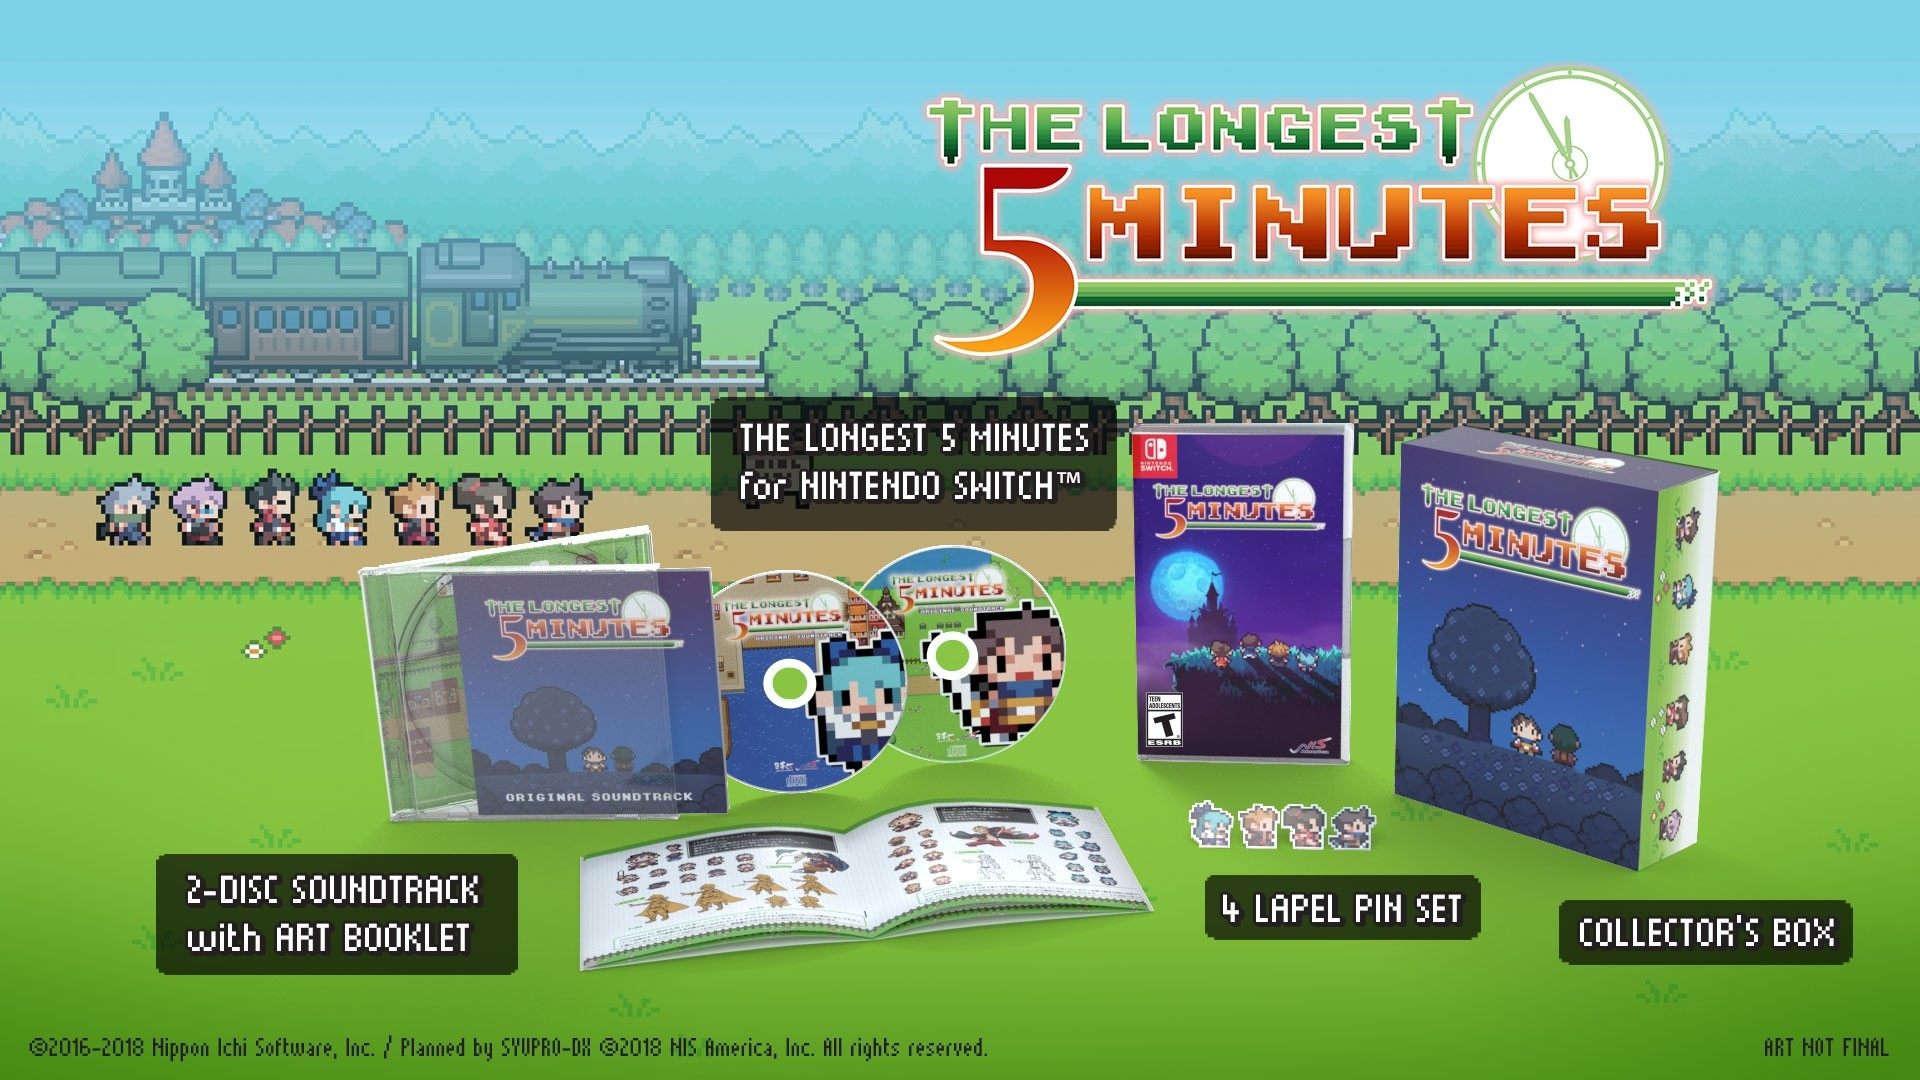 the-longest-five-minutes-limited-edition-image